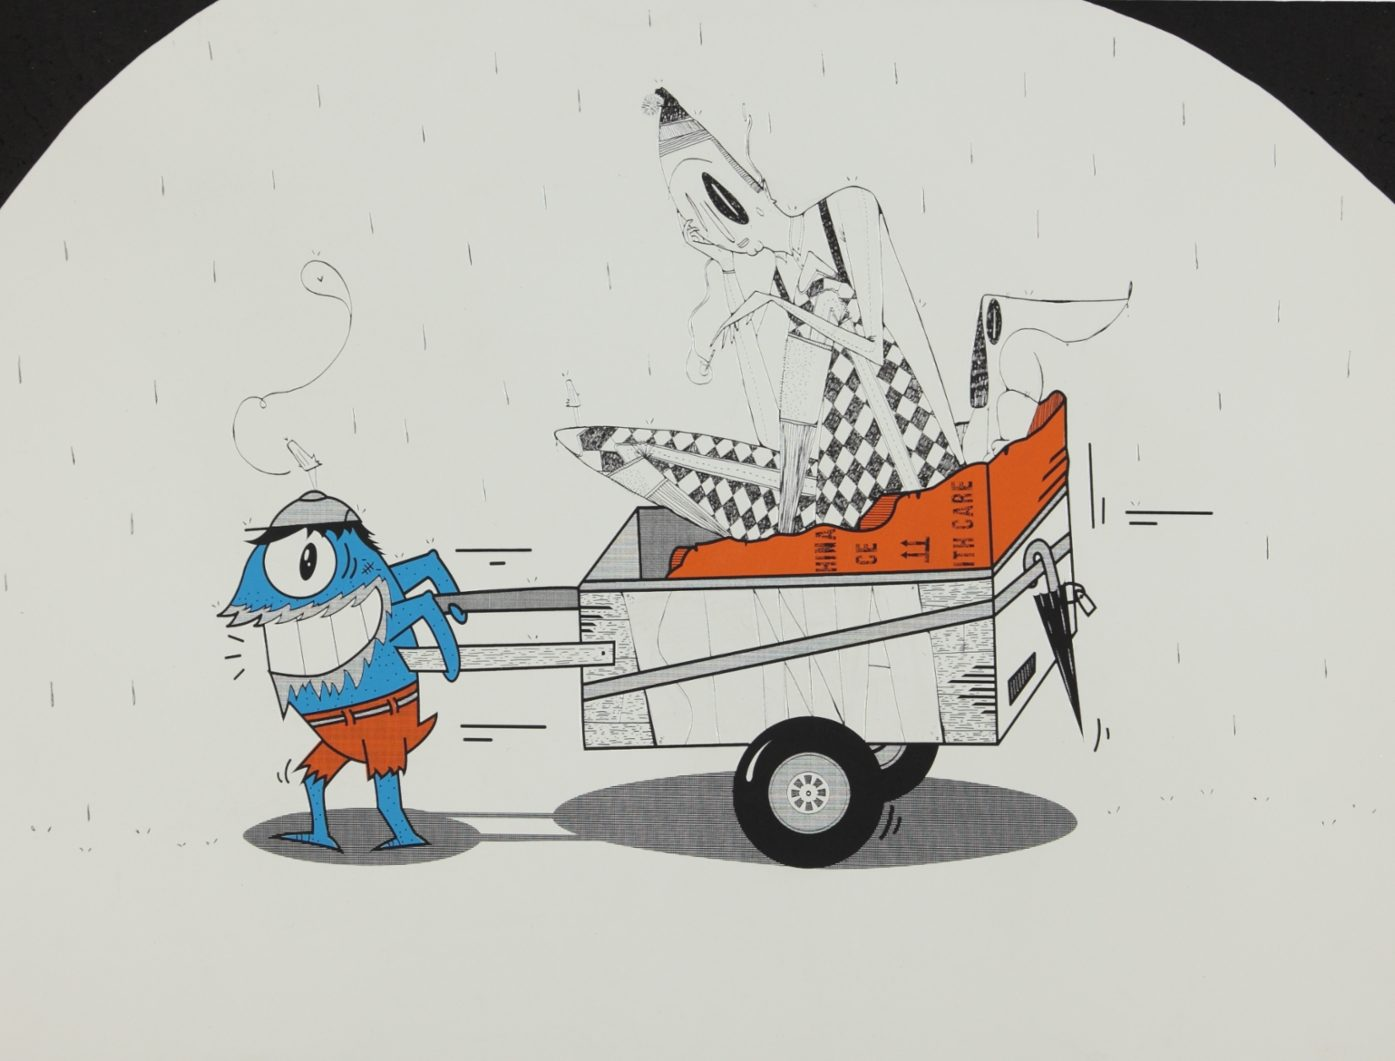 Streetlover by PEZ in collaboration with Alex Senna